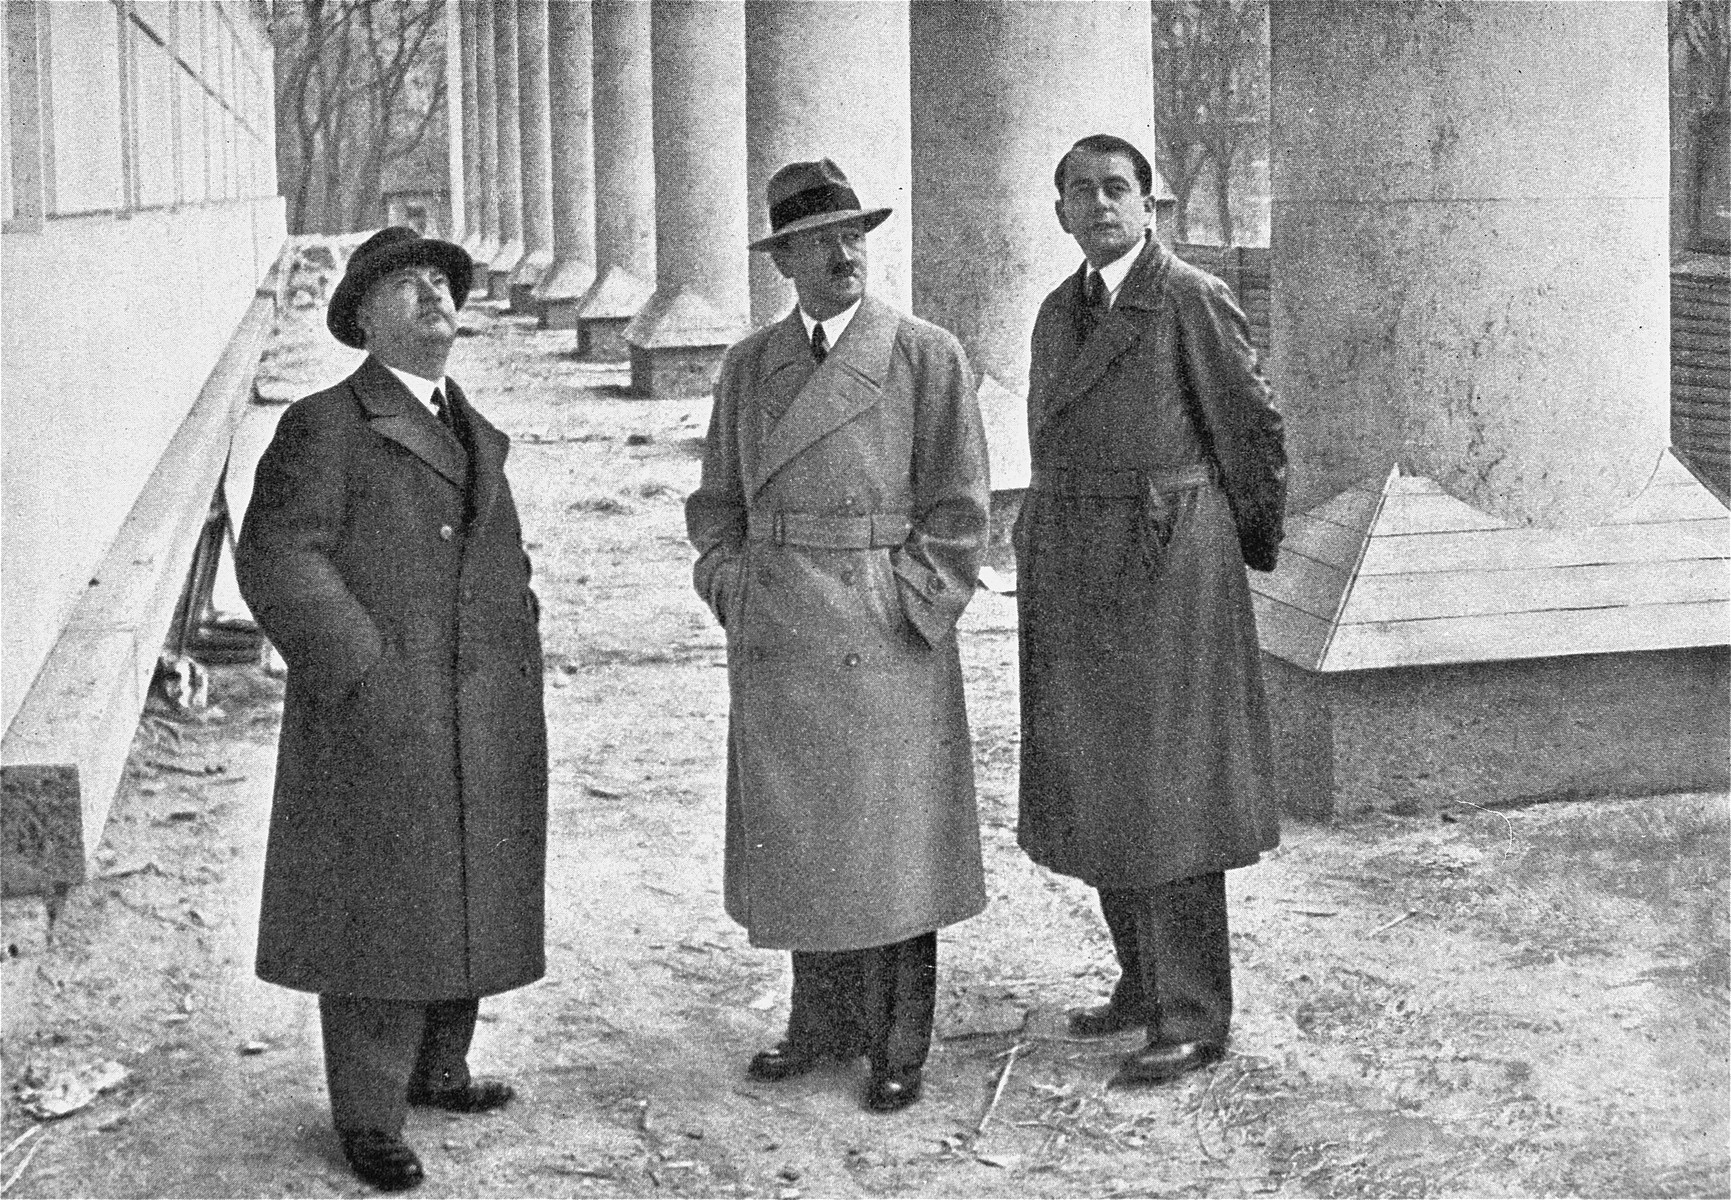 Hitler views the progress on the construction of the House of German Art in Munich with the architects Professor Gall (left) and Albert Speer (right).